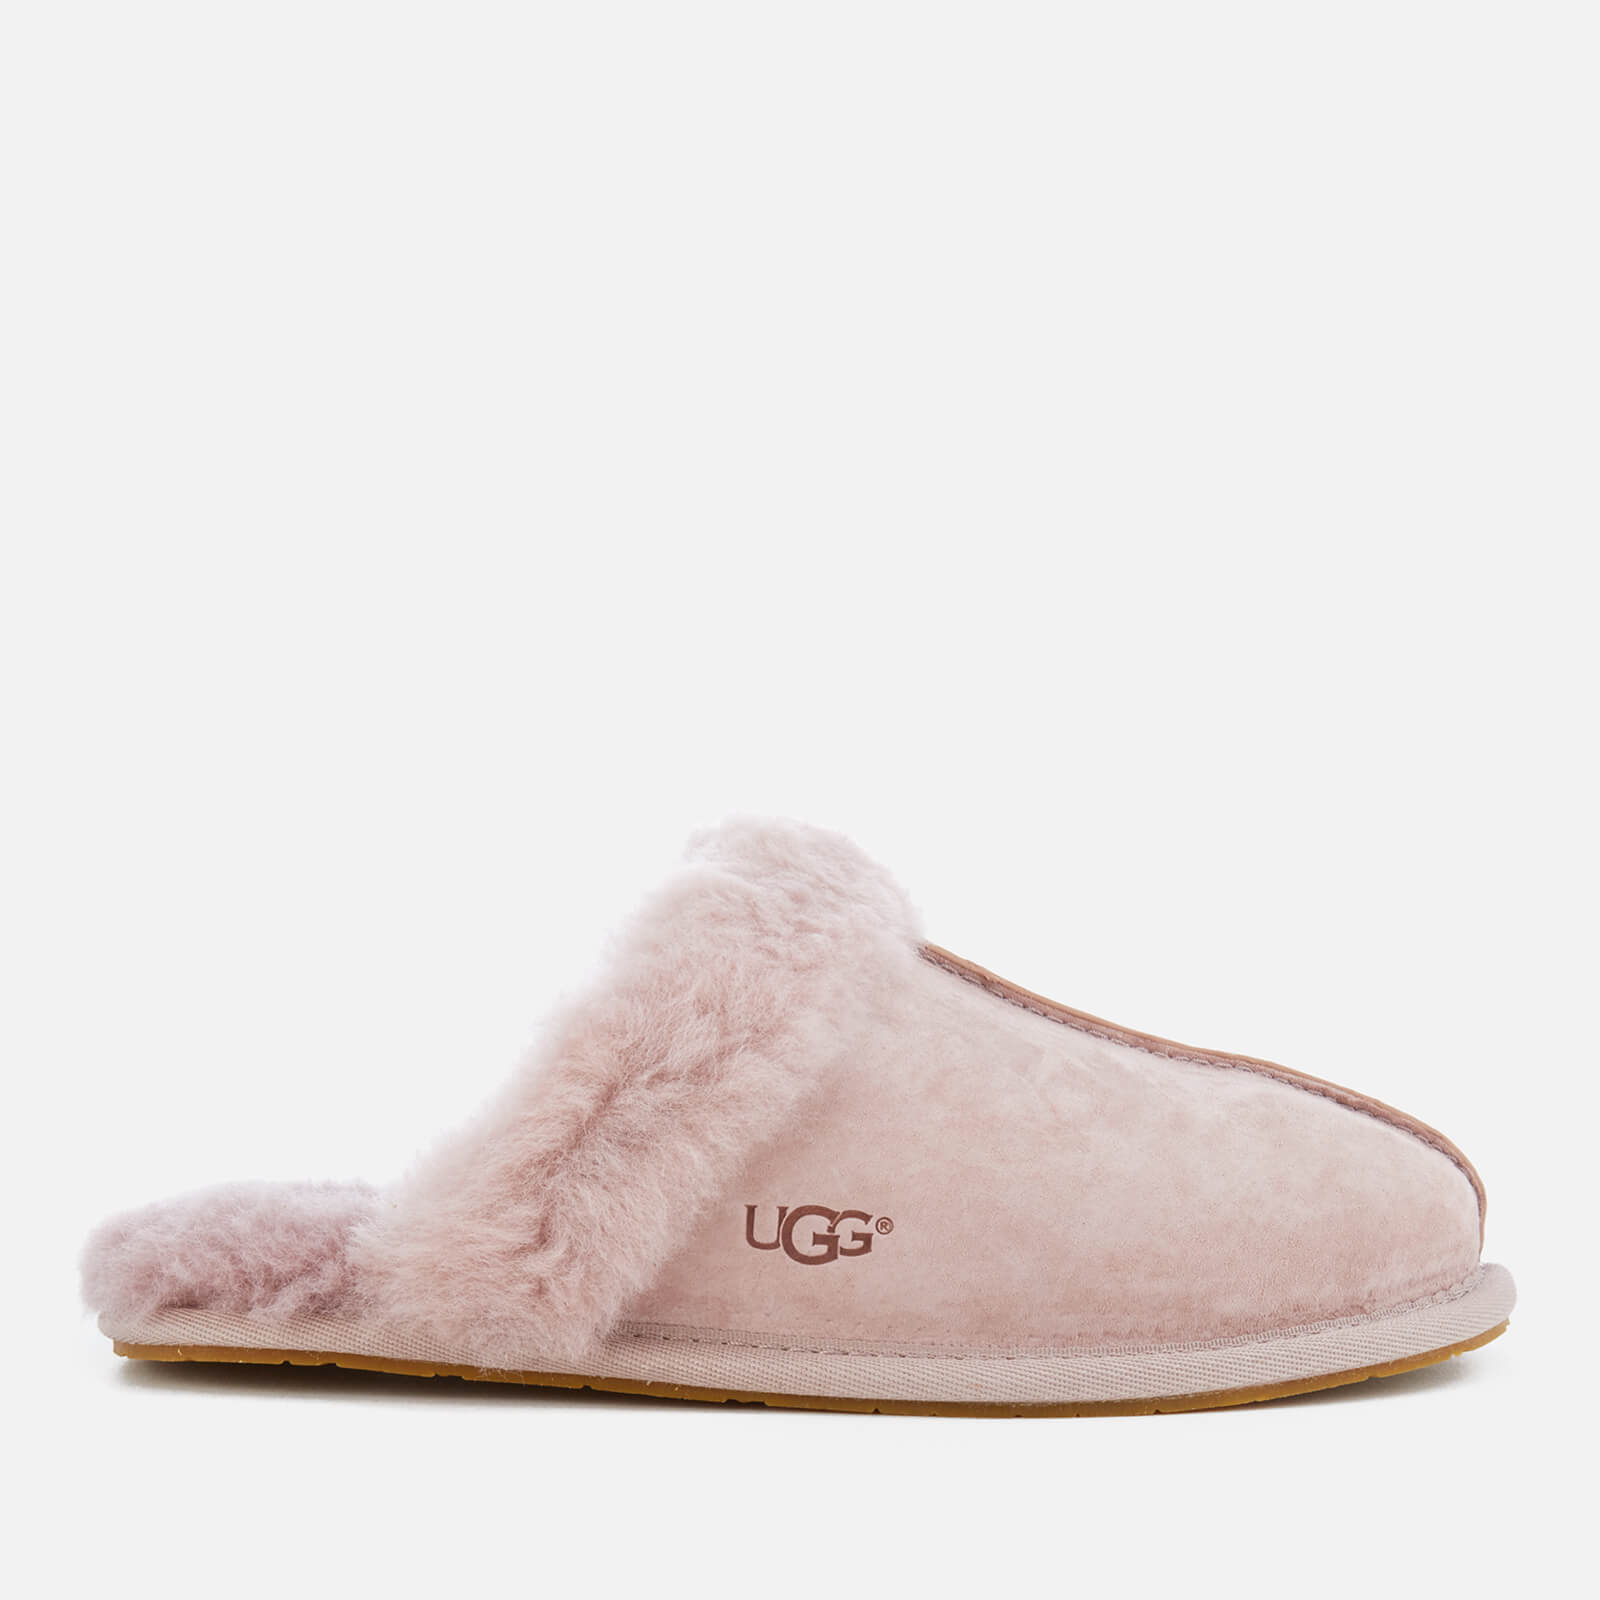 48e64898c552c6 UGG Women s Scuffette II Sheepskin Slippers - Dusk - Free UK Delivery over  £50